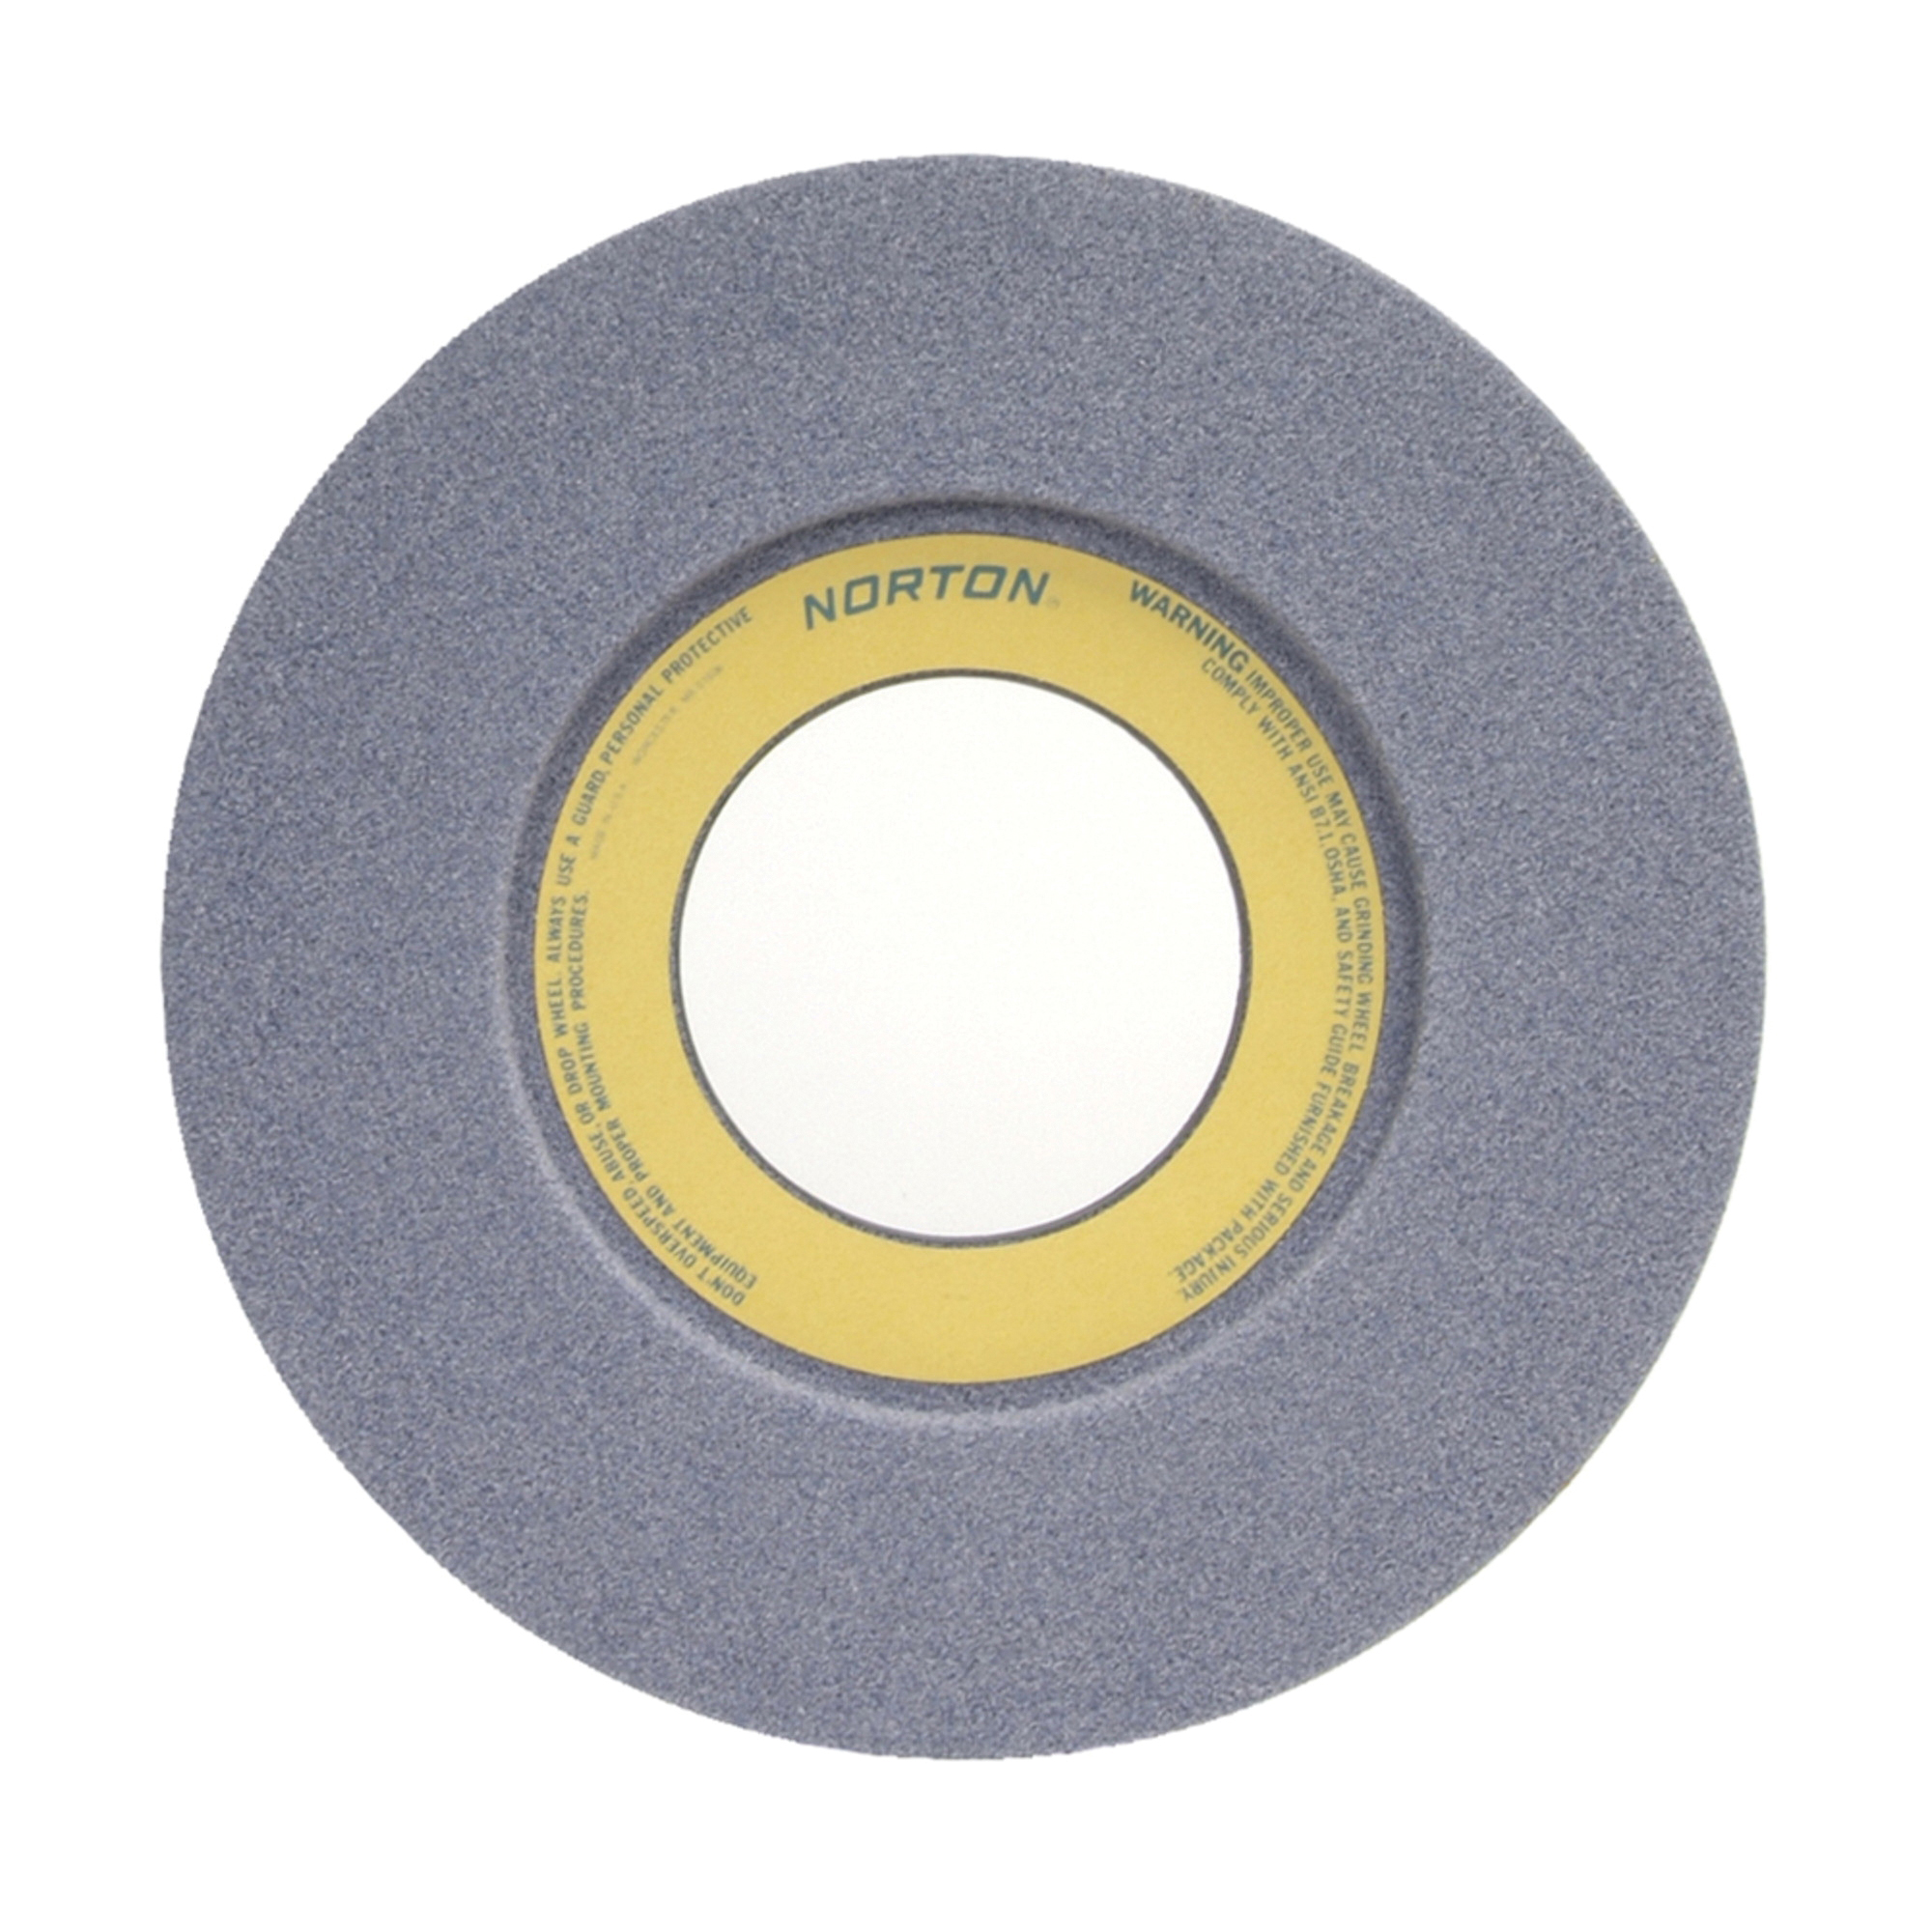 Norton® 66253364390 32A 1-Side Recessed Toolroom Wheel, 14 in Dia x 2 in THK, 5 in Center Hole, 60 Grit, Aluminum Oxide Abrasive